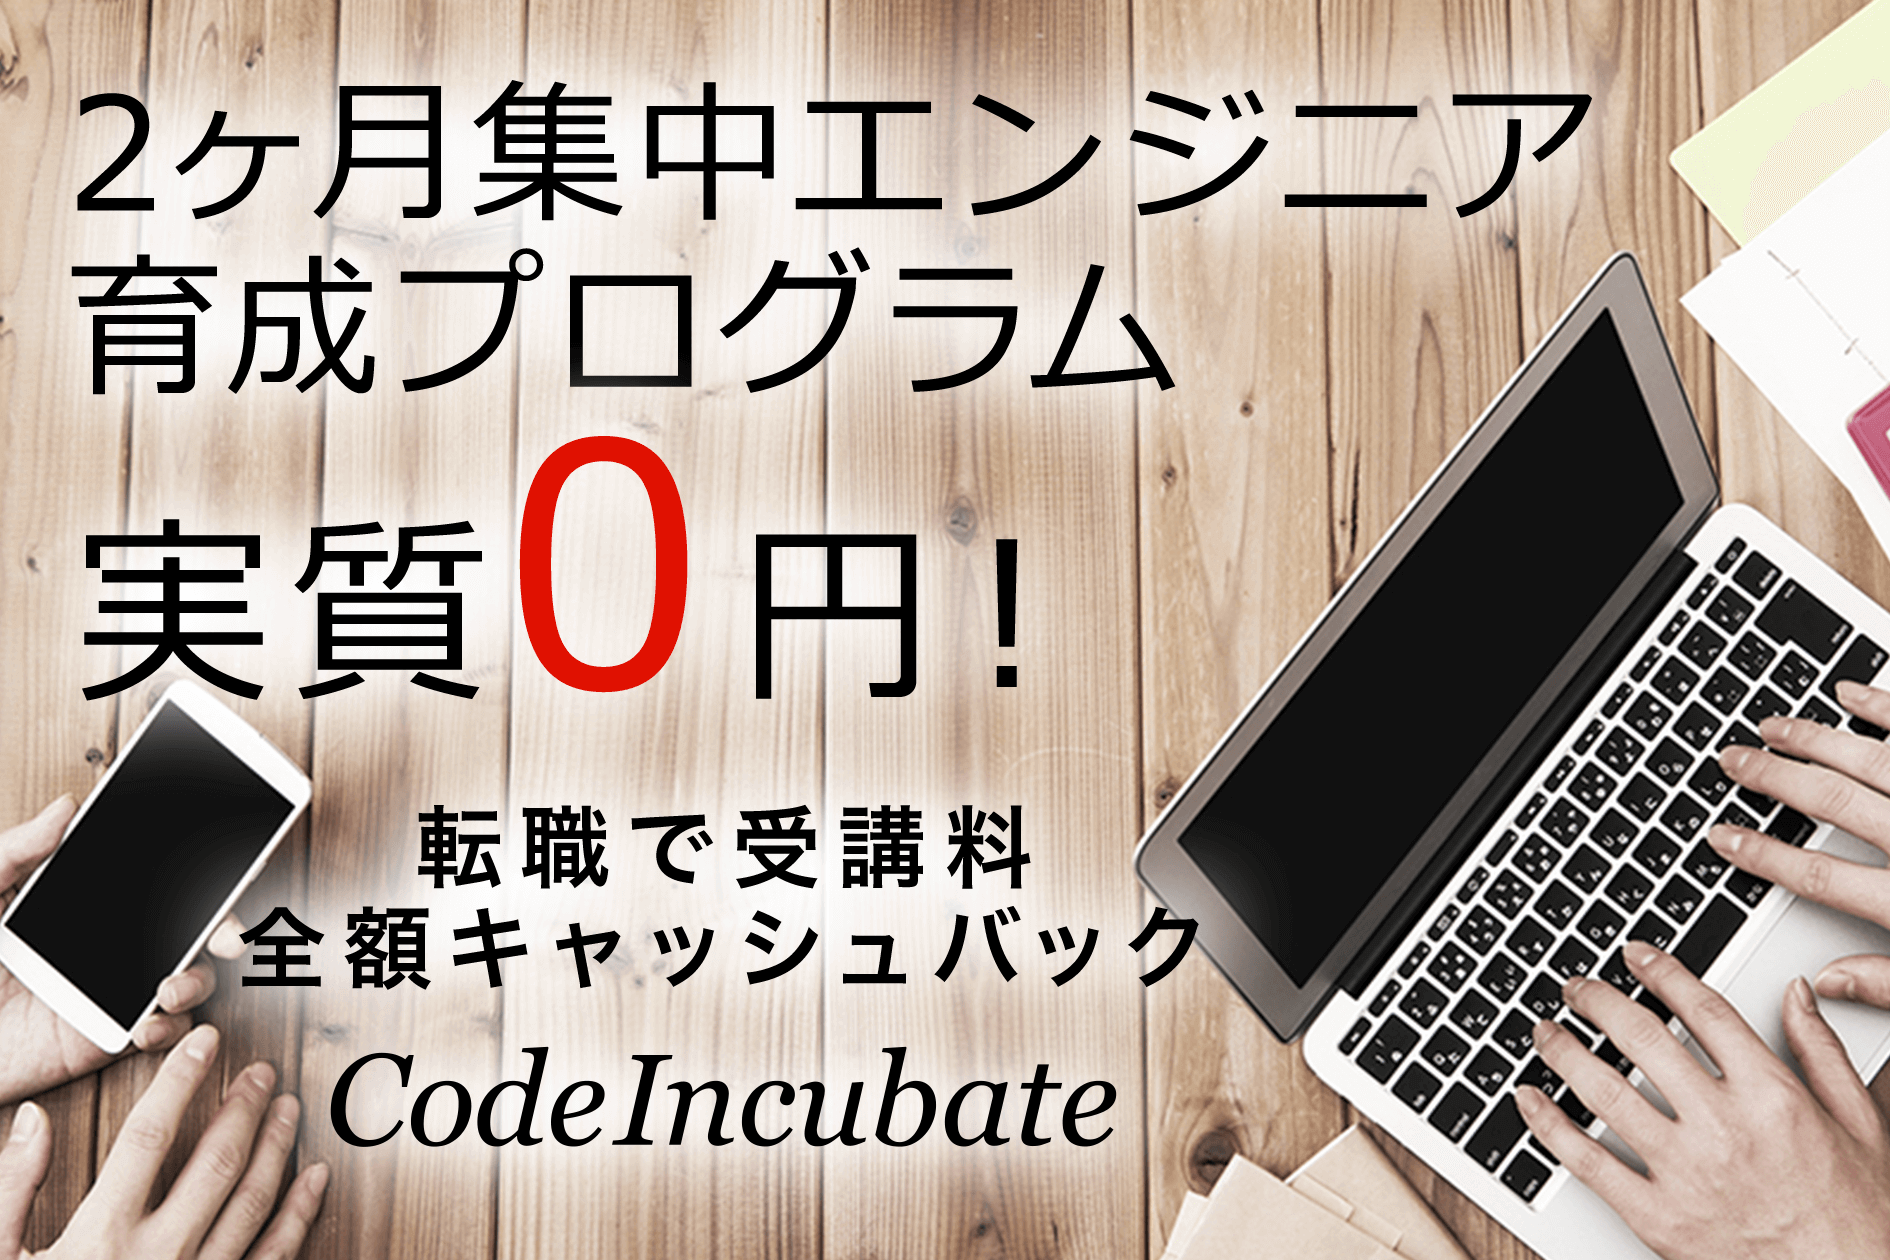 CodeIncubate